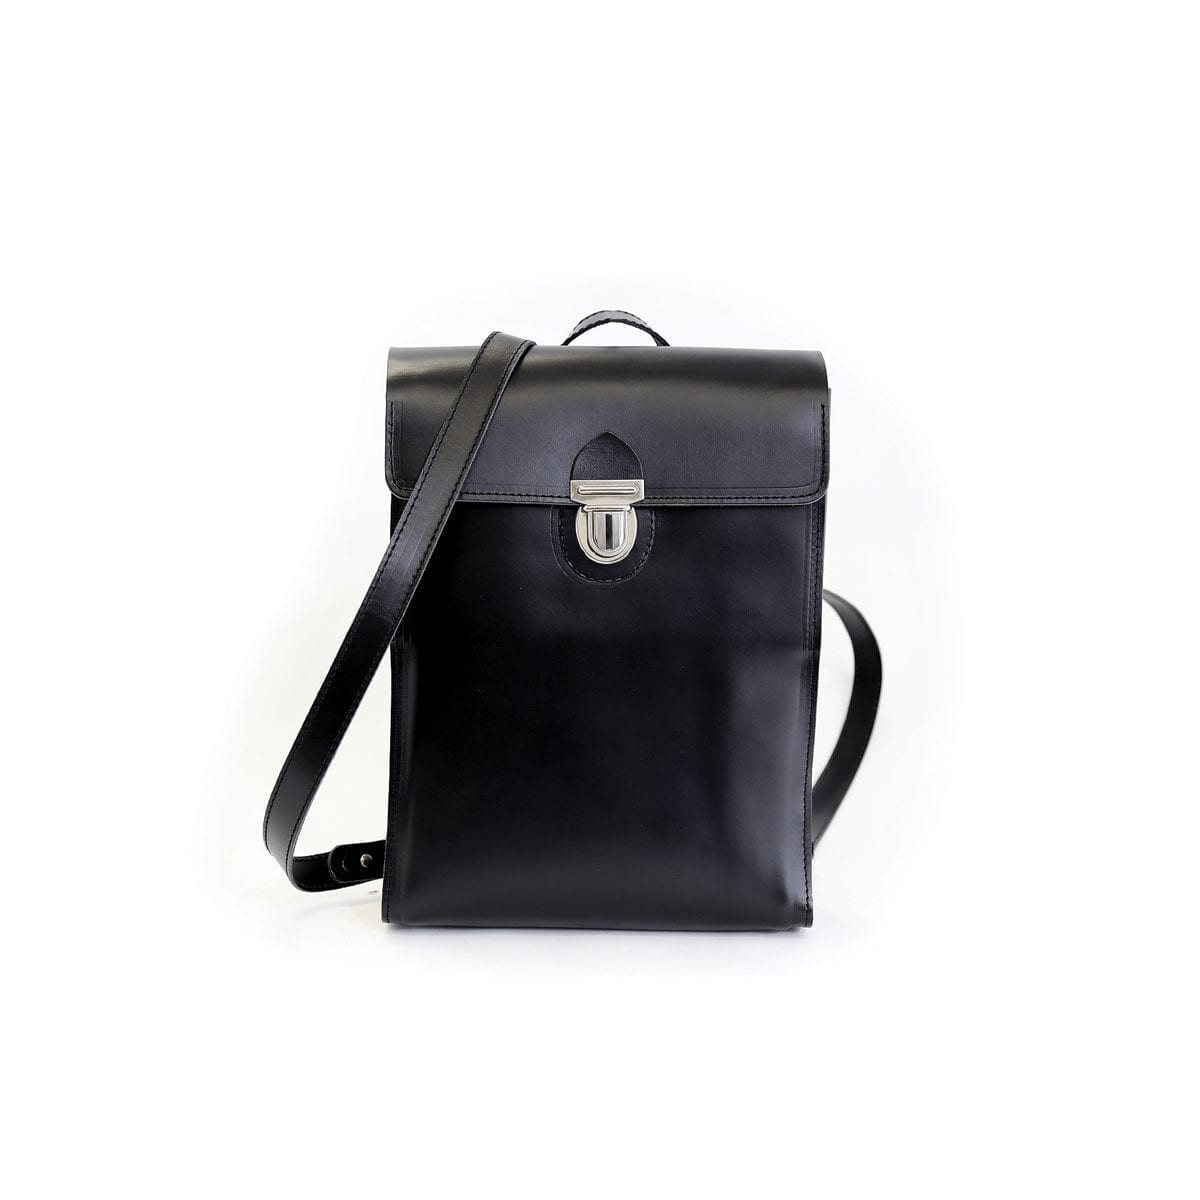 LUMI Oiva Backpack, in black, is created using natural vegetable tanned cow leather. The color will naturally change over time.